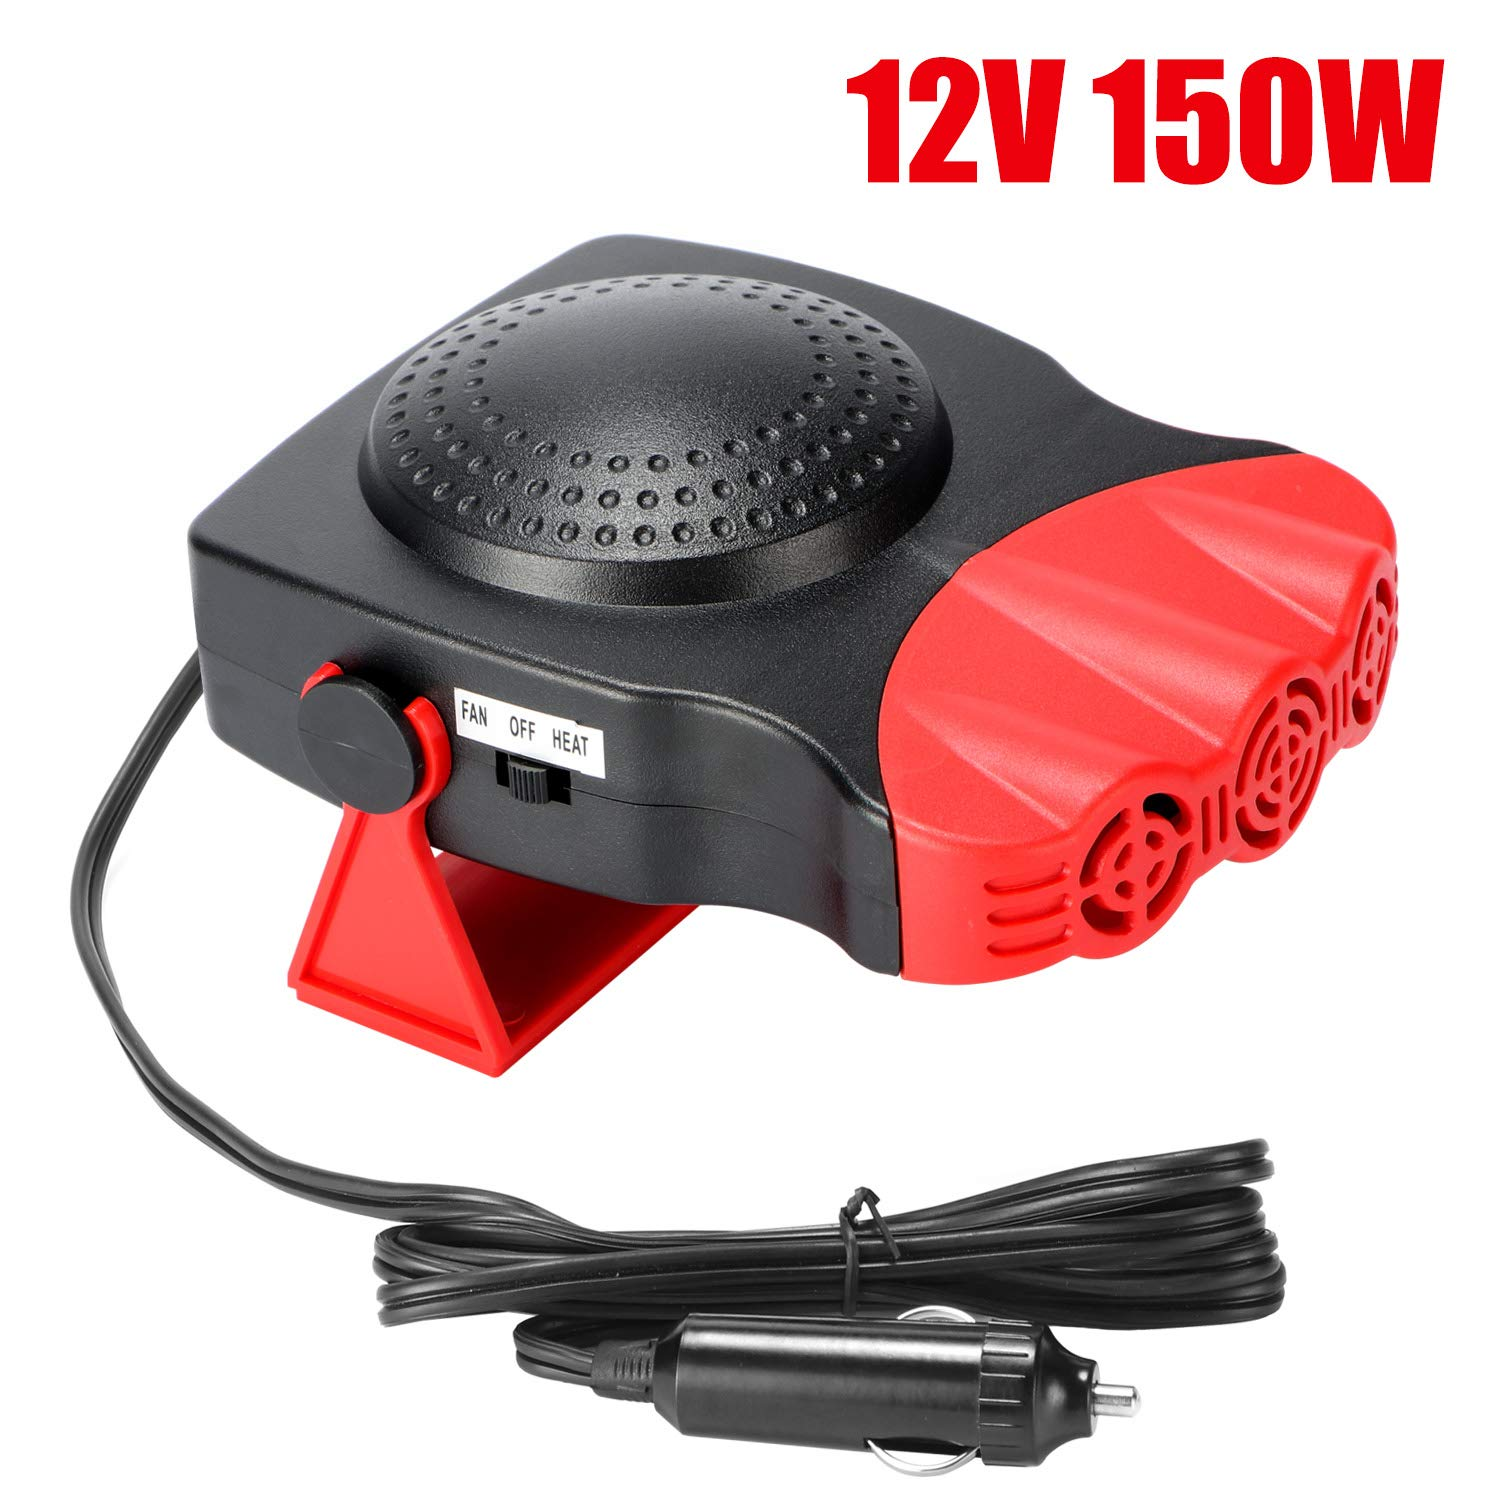 BOBOO Car Heater Car Cooling and Heater 2 in1 Fast Heating Defrosts Defogger 12V 150W Portable Demister